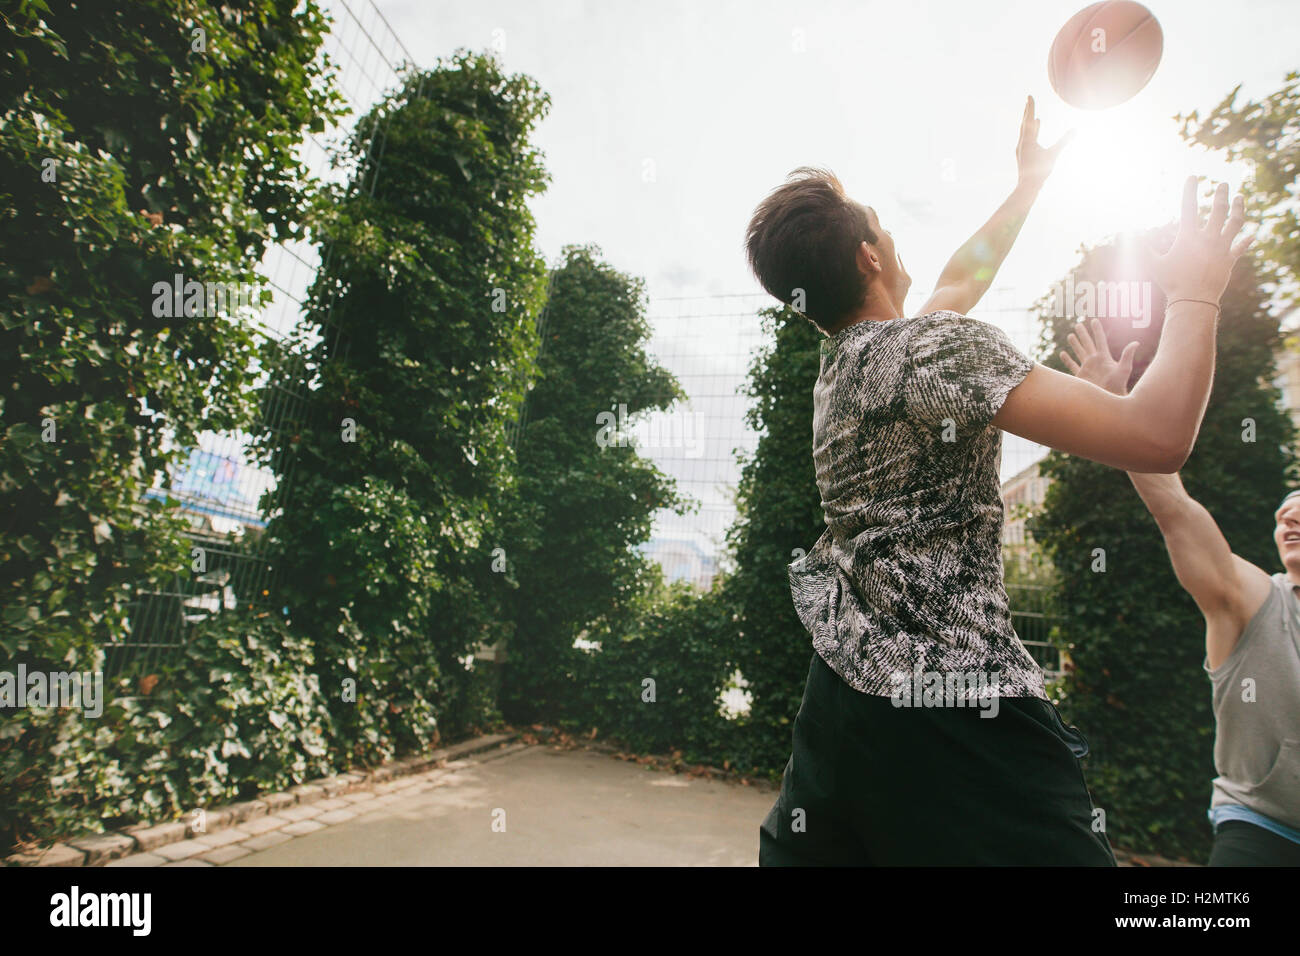 Friends playing basketball against each other and having fun on outdoor court. Two young men playing basketball - Stock Image